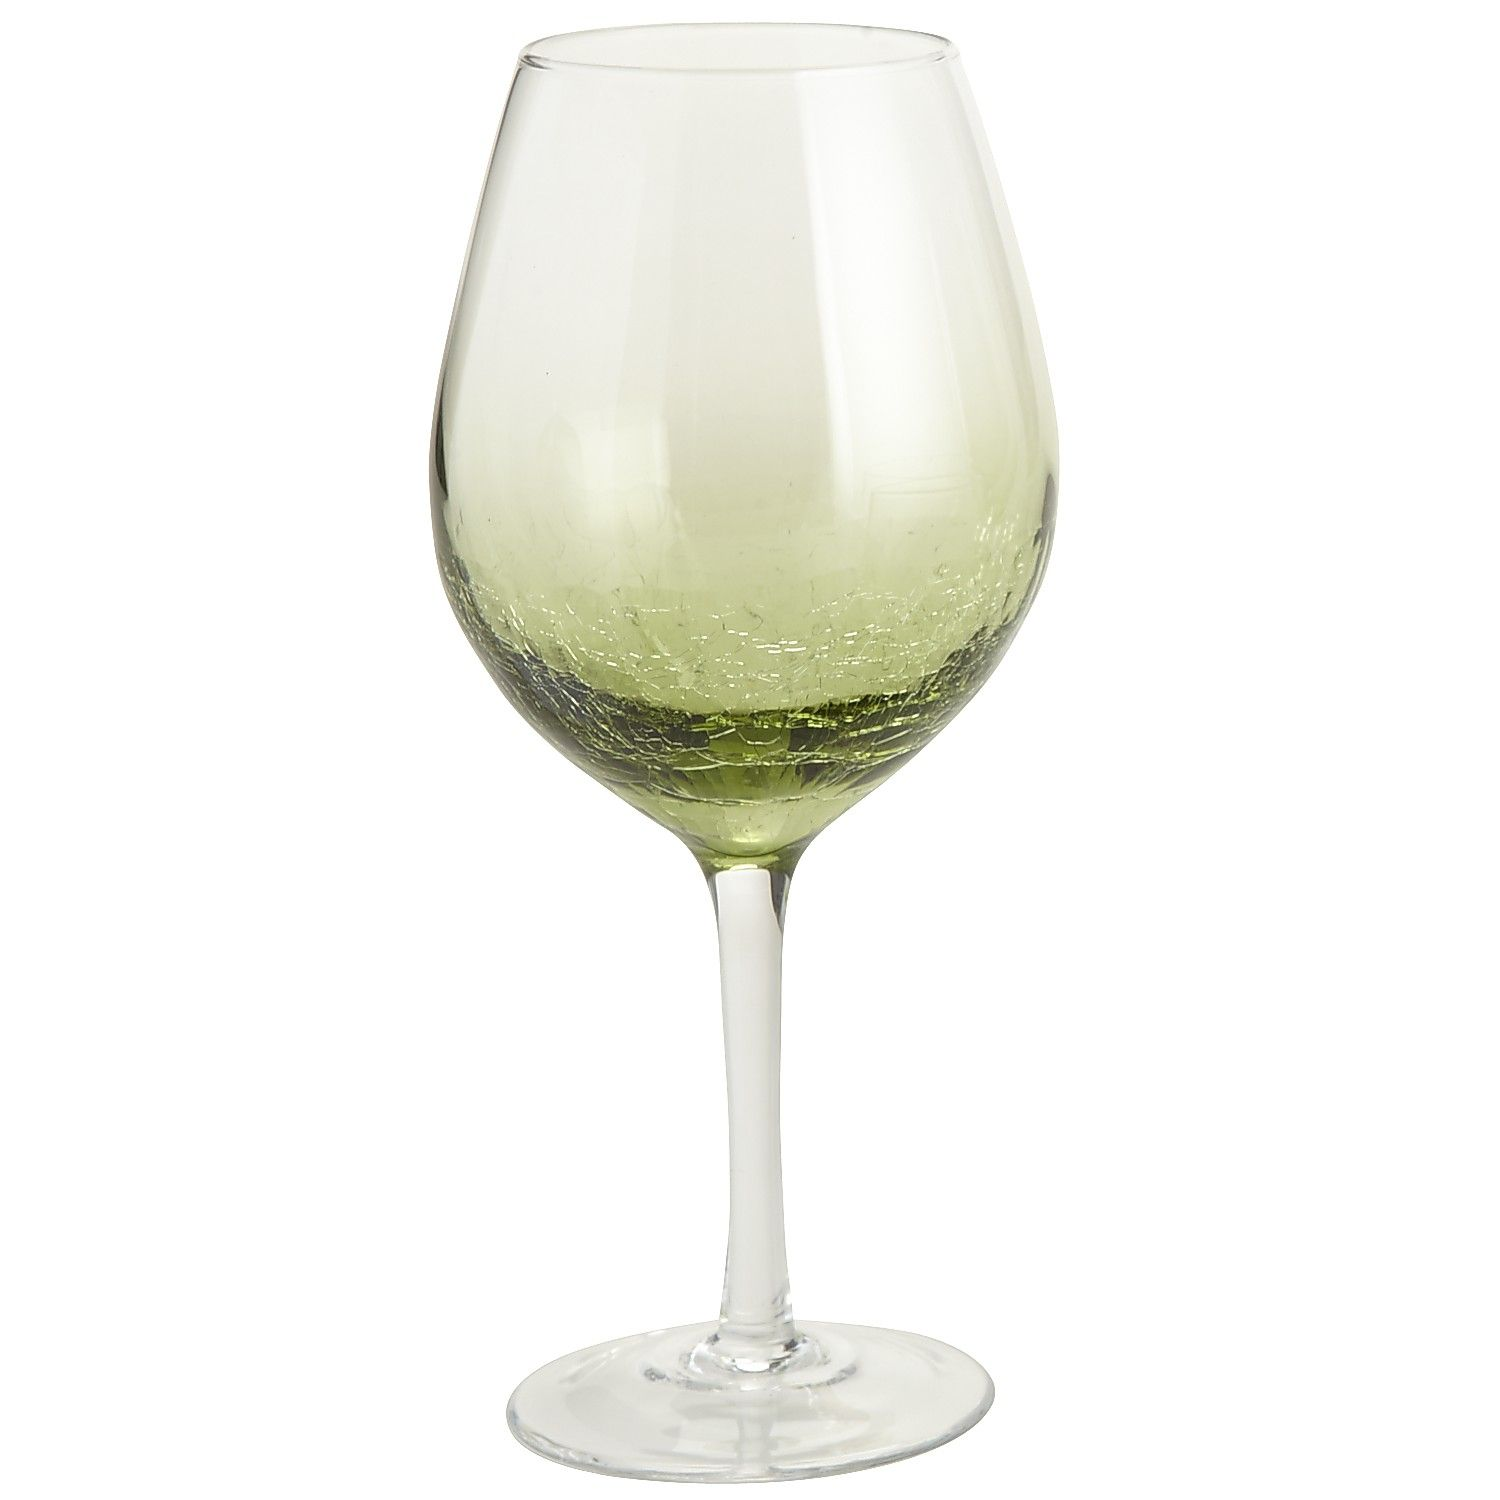 Crystal Stemware Wine Glasses Olive Green Crackle Balloon Wine Glass Barware